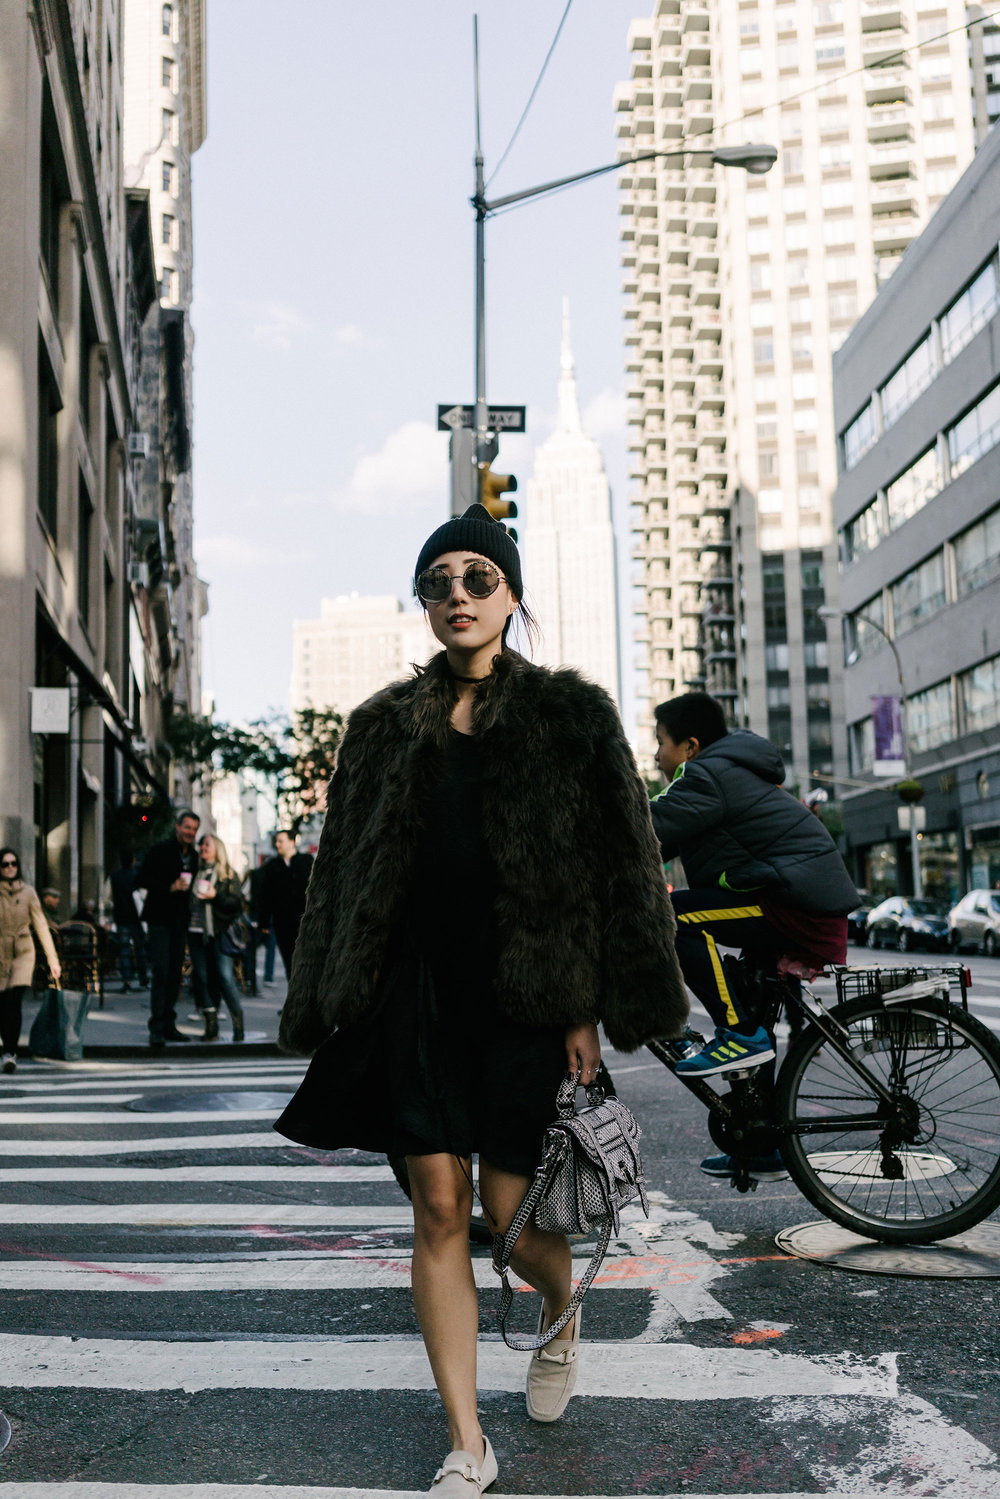 Helmut Lang Coat, McQ Dress, Isabel Marant Shoes, Proenza Schouler Bag, Stella McCartney Beanie, Cutler and Gross Sunglasses